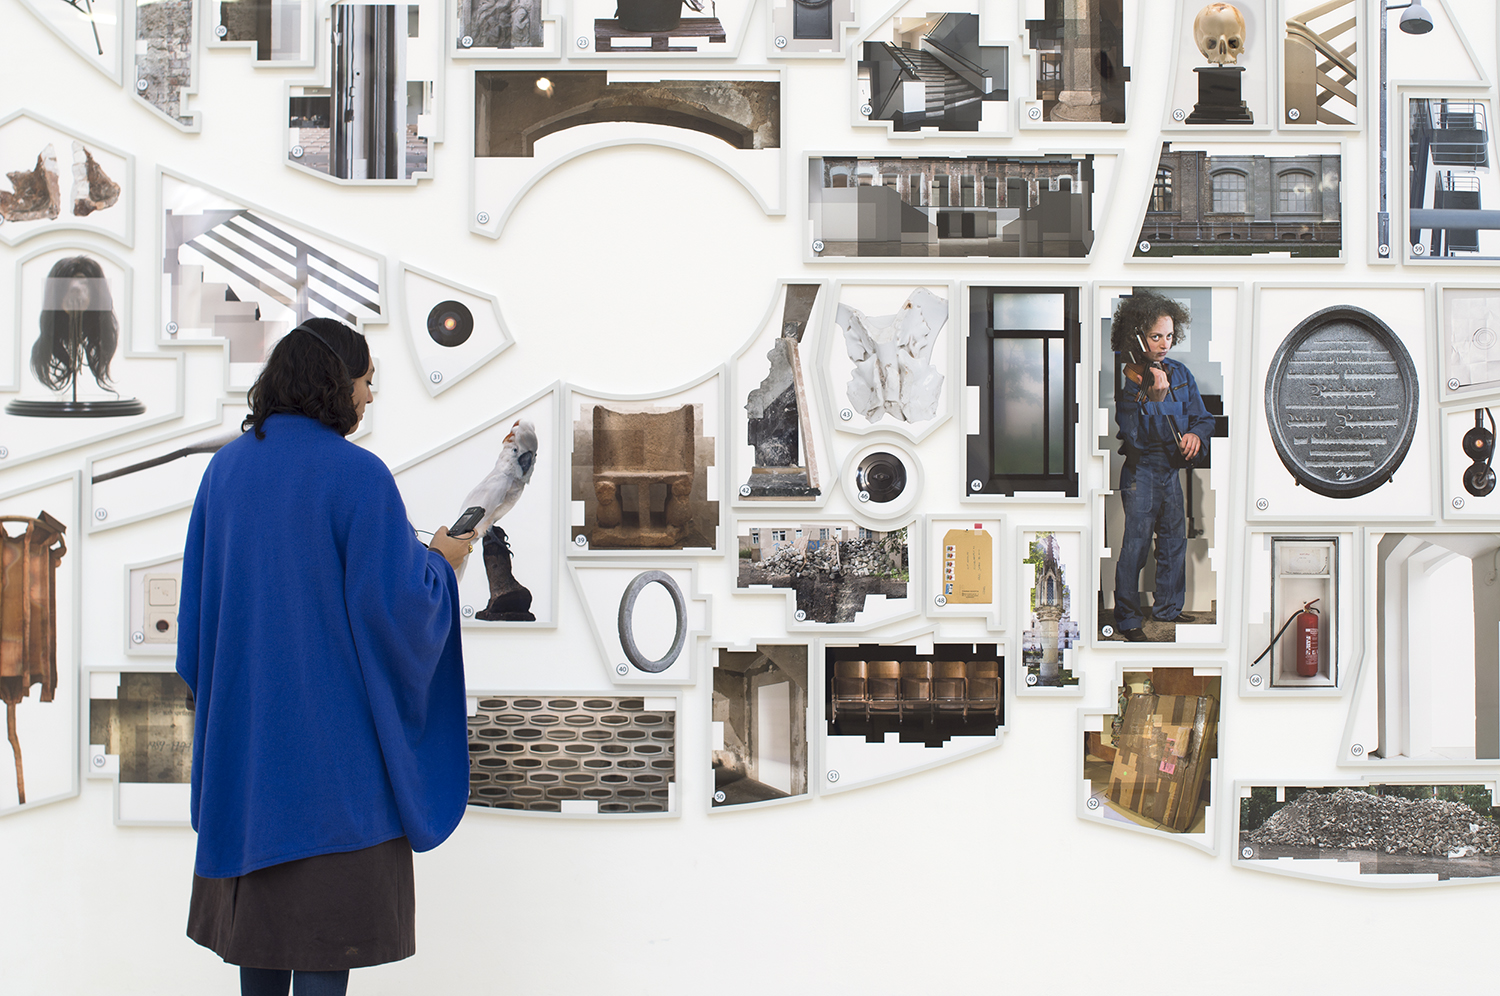 Ilit Azoulay, Shifting Degrees of Certainty, 2014, installatiov view MoMA New York Ocean of Images: New Photography 2015